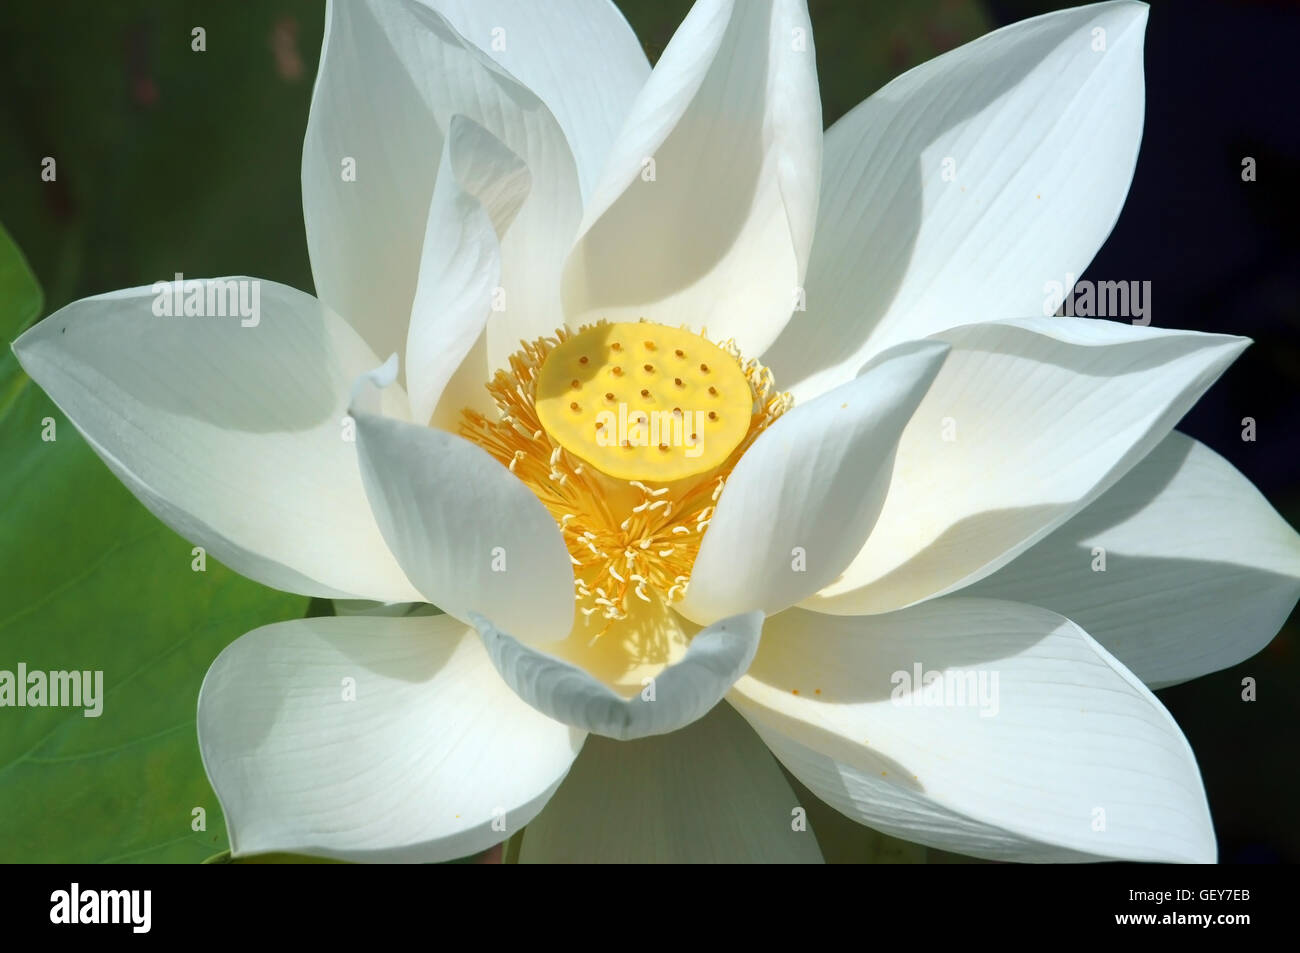 Vietnamese flower pure white lotus flower symbol of vietnam at vietnamese flower pure white lotus flower symbol of vietnam at mekong delta closeup of beautiful bloossom mightylinksfo